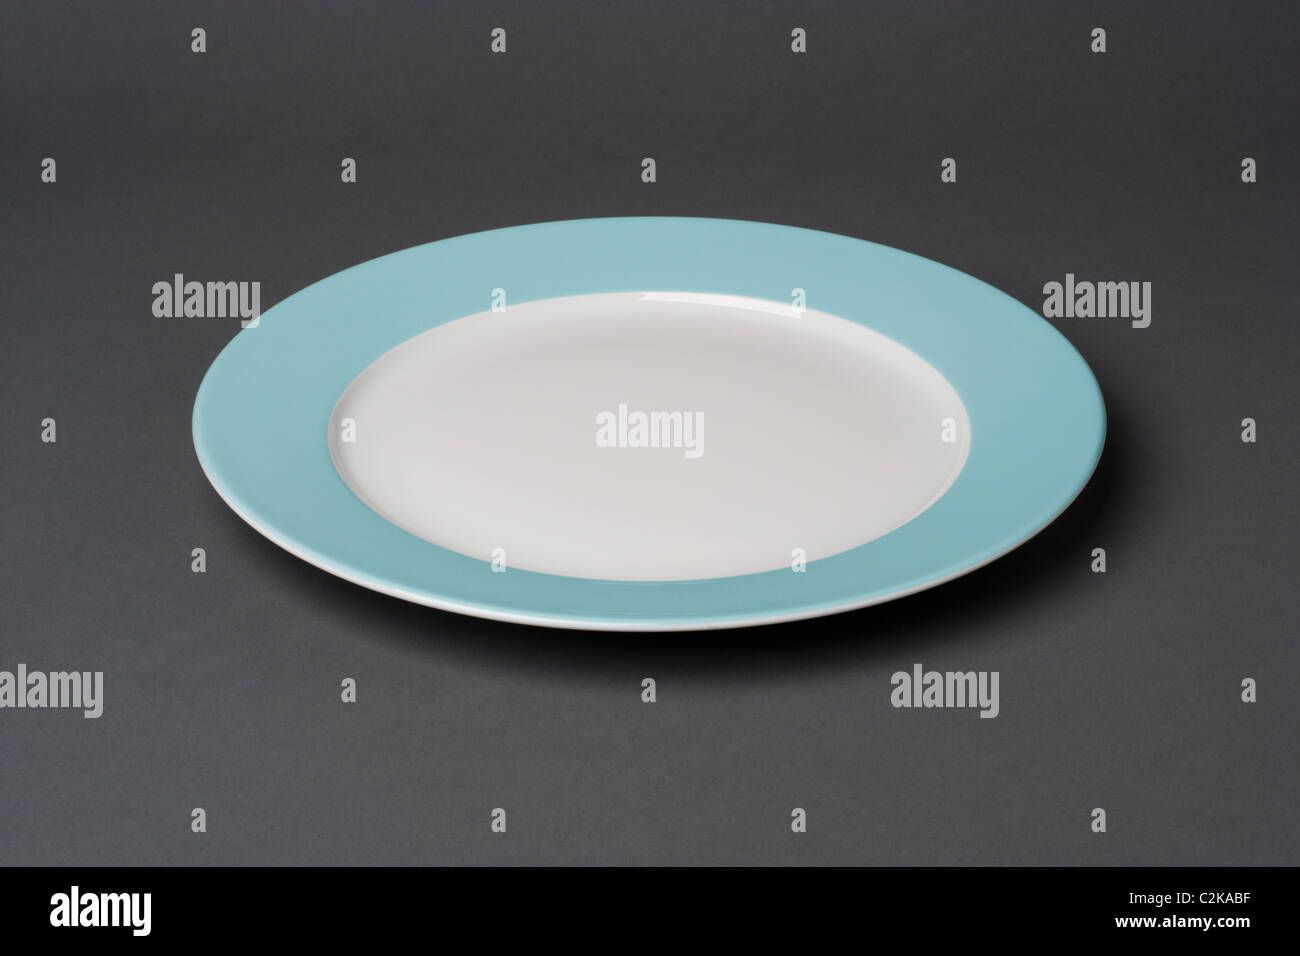 blue dinner plate on a grey background - Stock Image